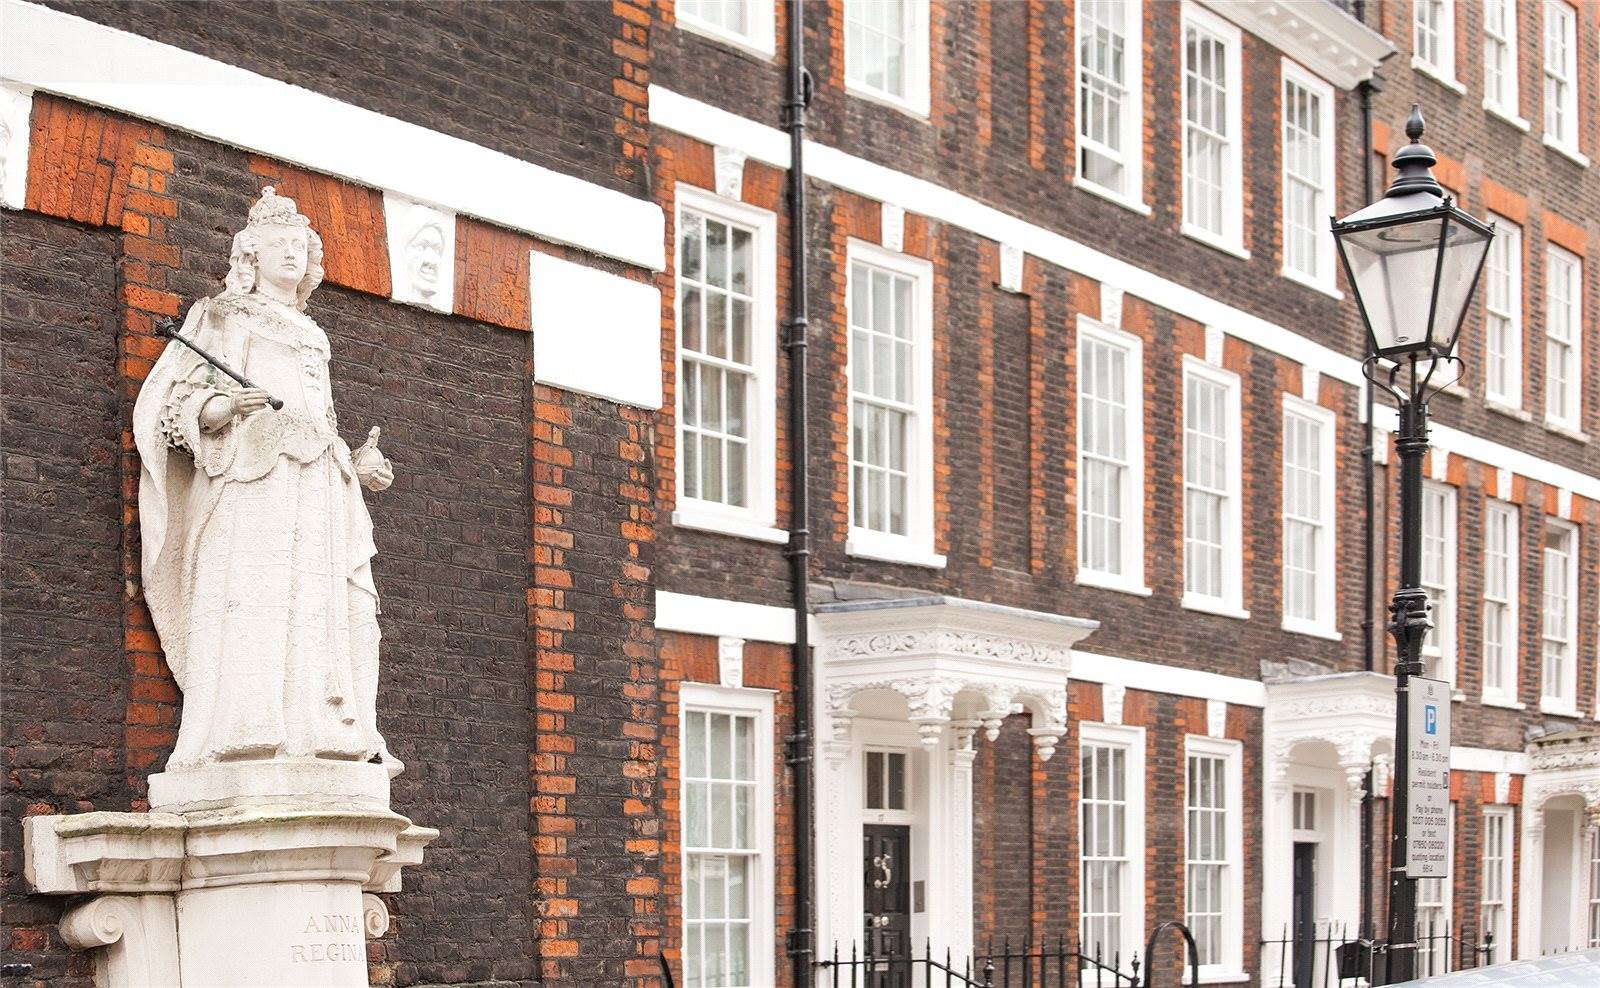 Number 15 Queen Anne's Gate in Westminster is one of the London's finest extant examples of the Queen Anne baroque style. At the north flank of the house, a circa-1705 statue of Queen Anne overlooks the street which bears her name.